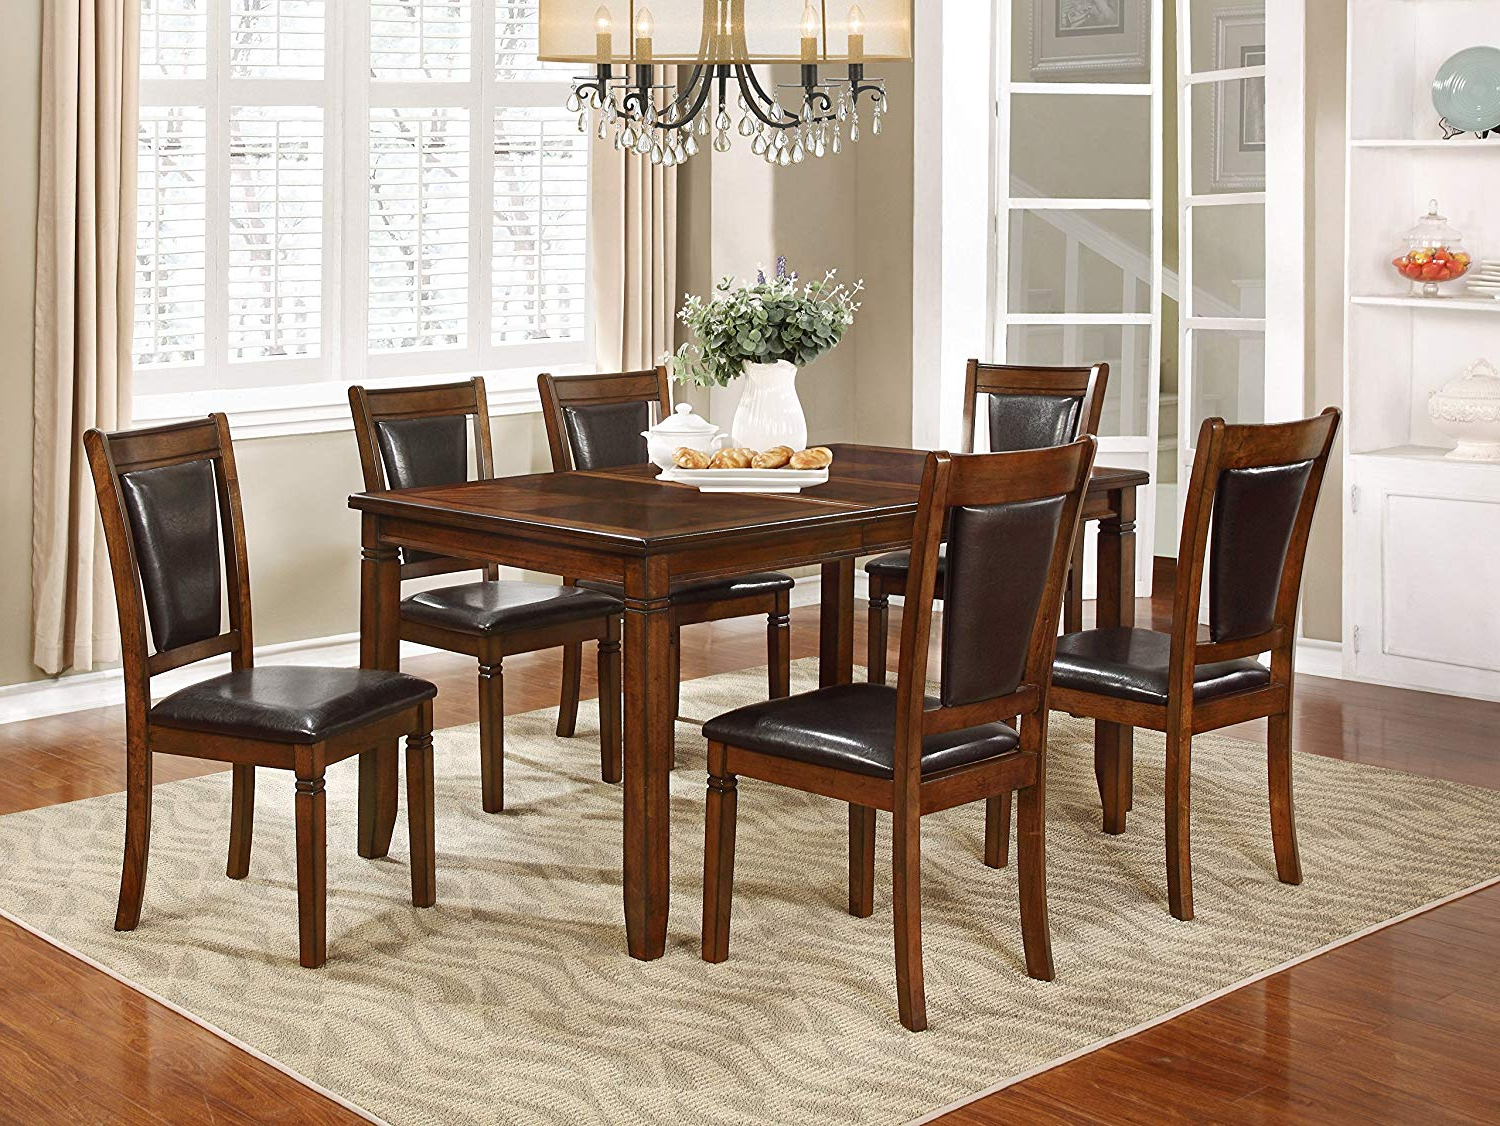 Nhi Express 7Pcs Wood Dining Set In Favorite Transitional 6 Seating Casual Dining Tables (View 3 of 25)